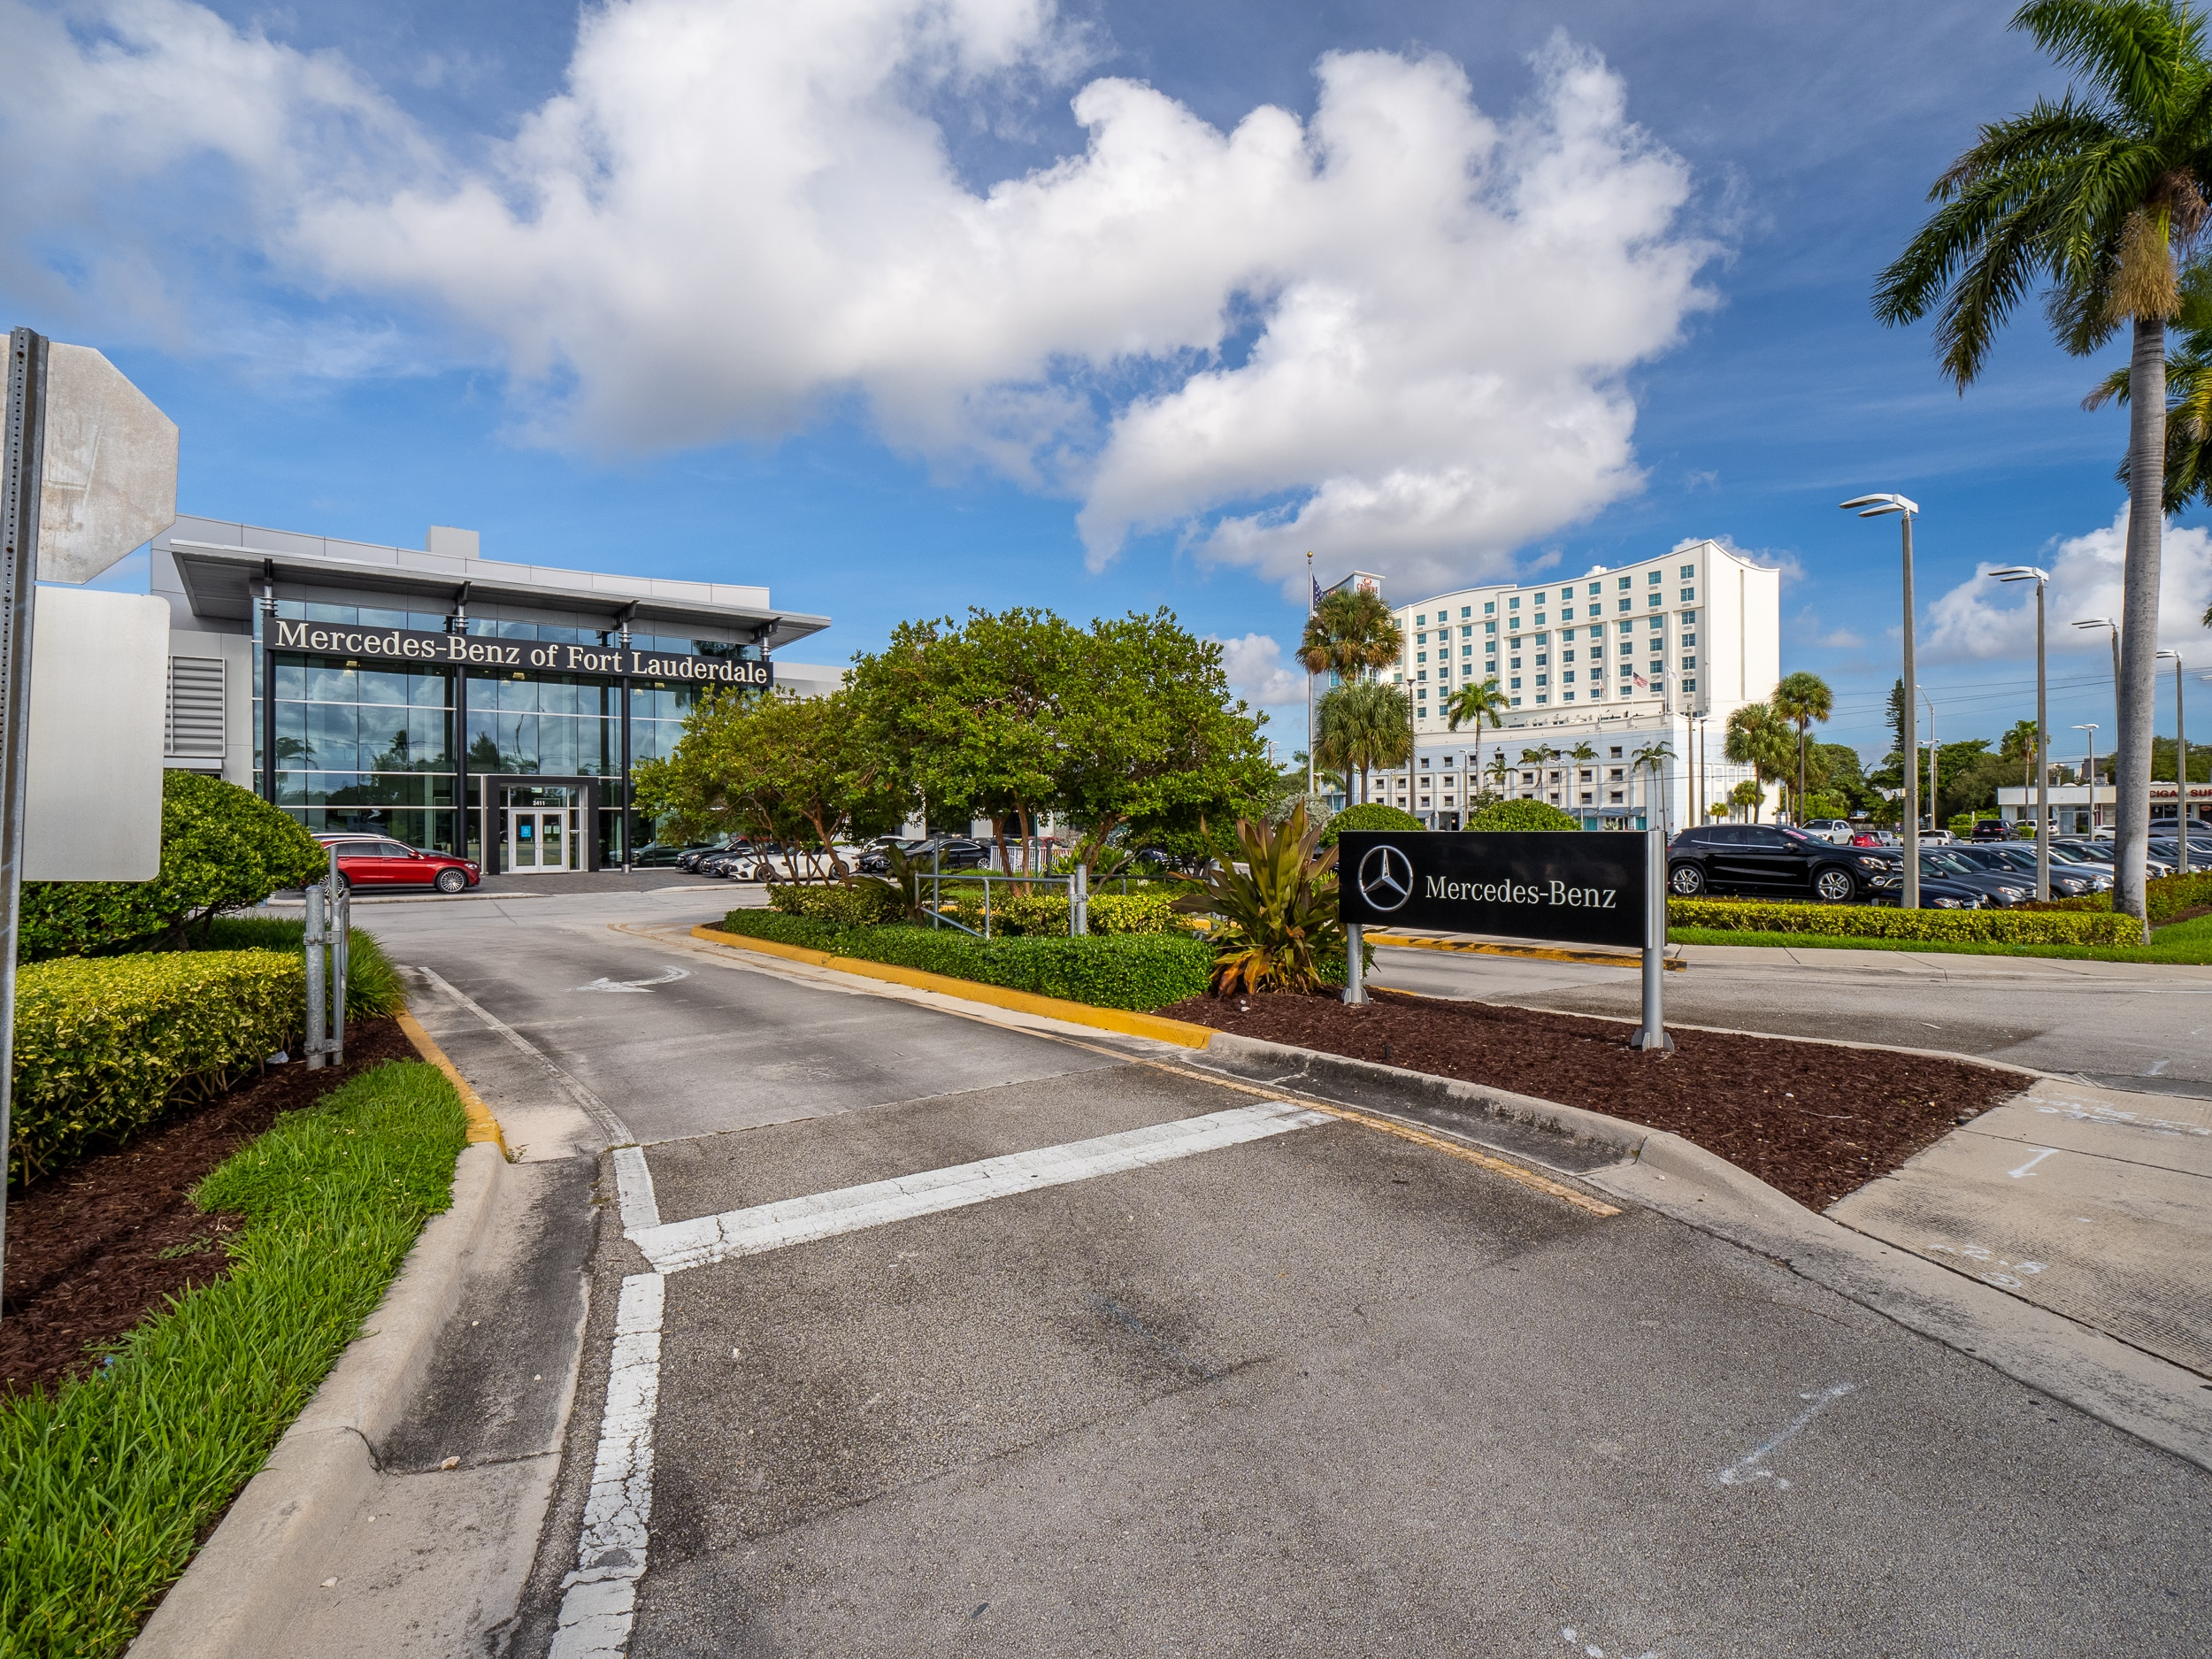 Outside  view of Mercedes-Benz of Fort Lauderdale